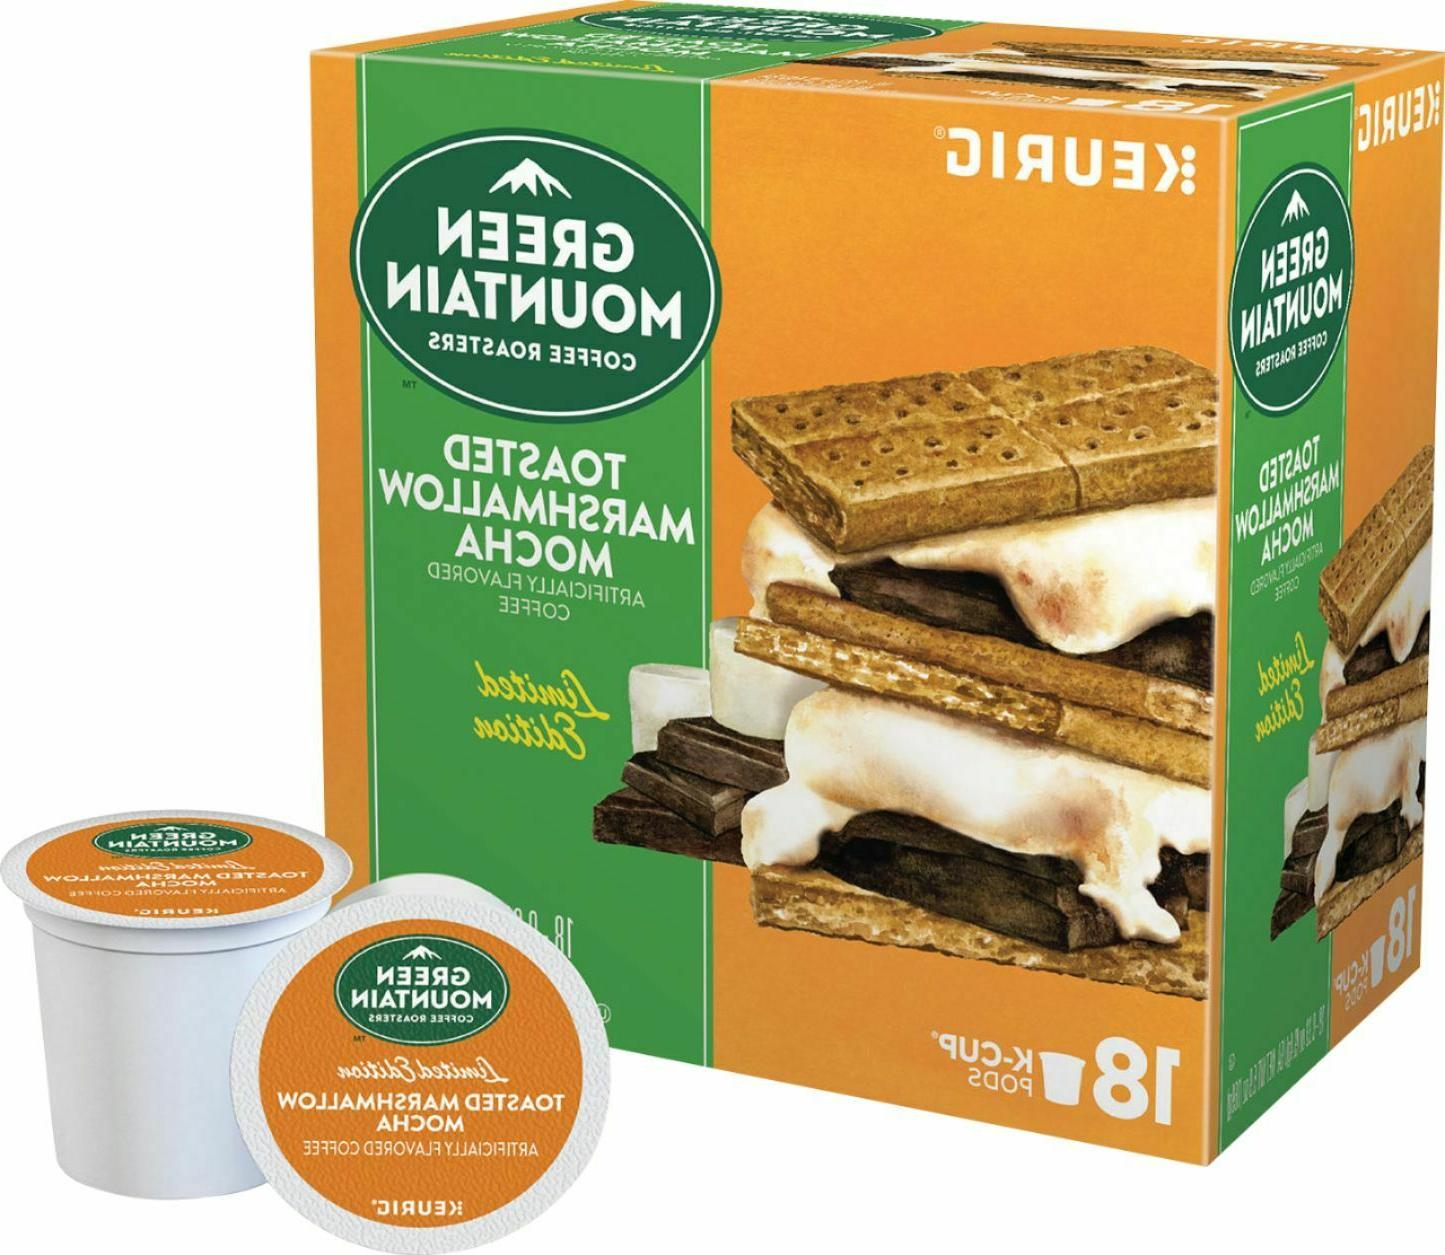 18 toasted marshmallow mocha k cups pods